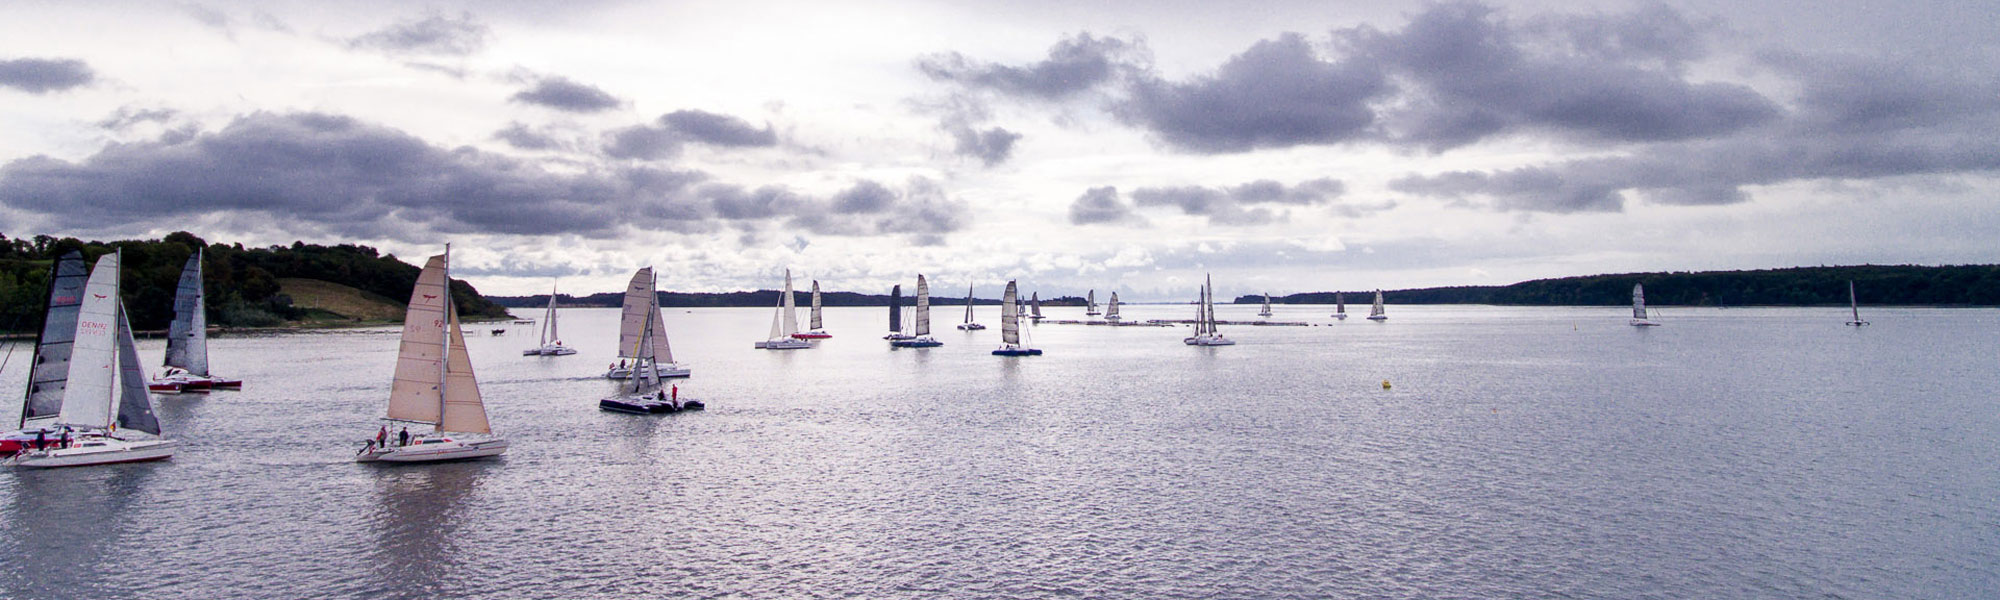 Dragonfly trimaran fleet of 30+ boats at owners event